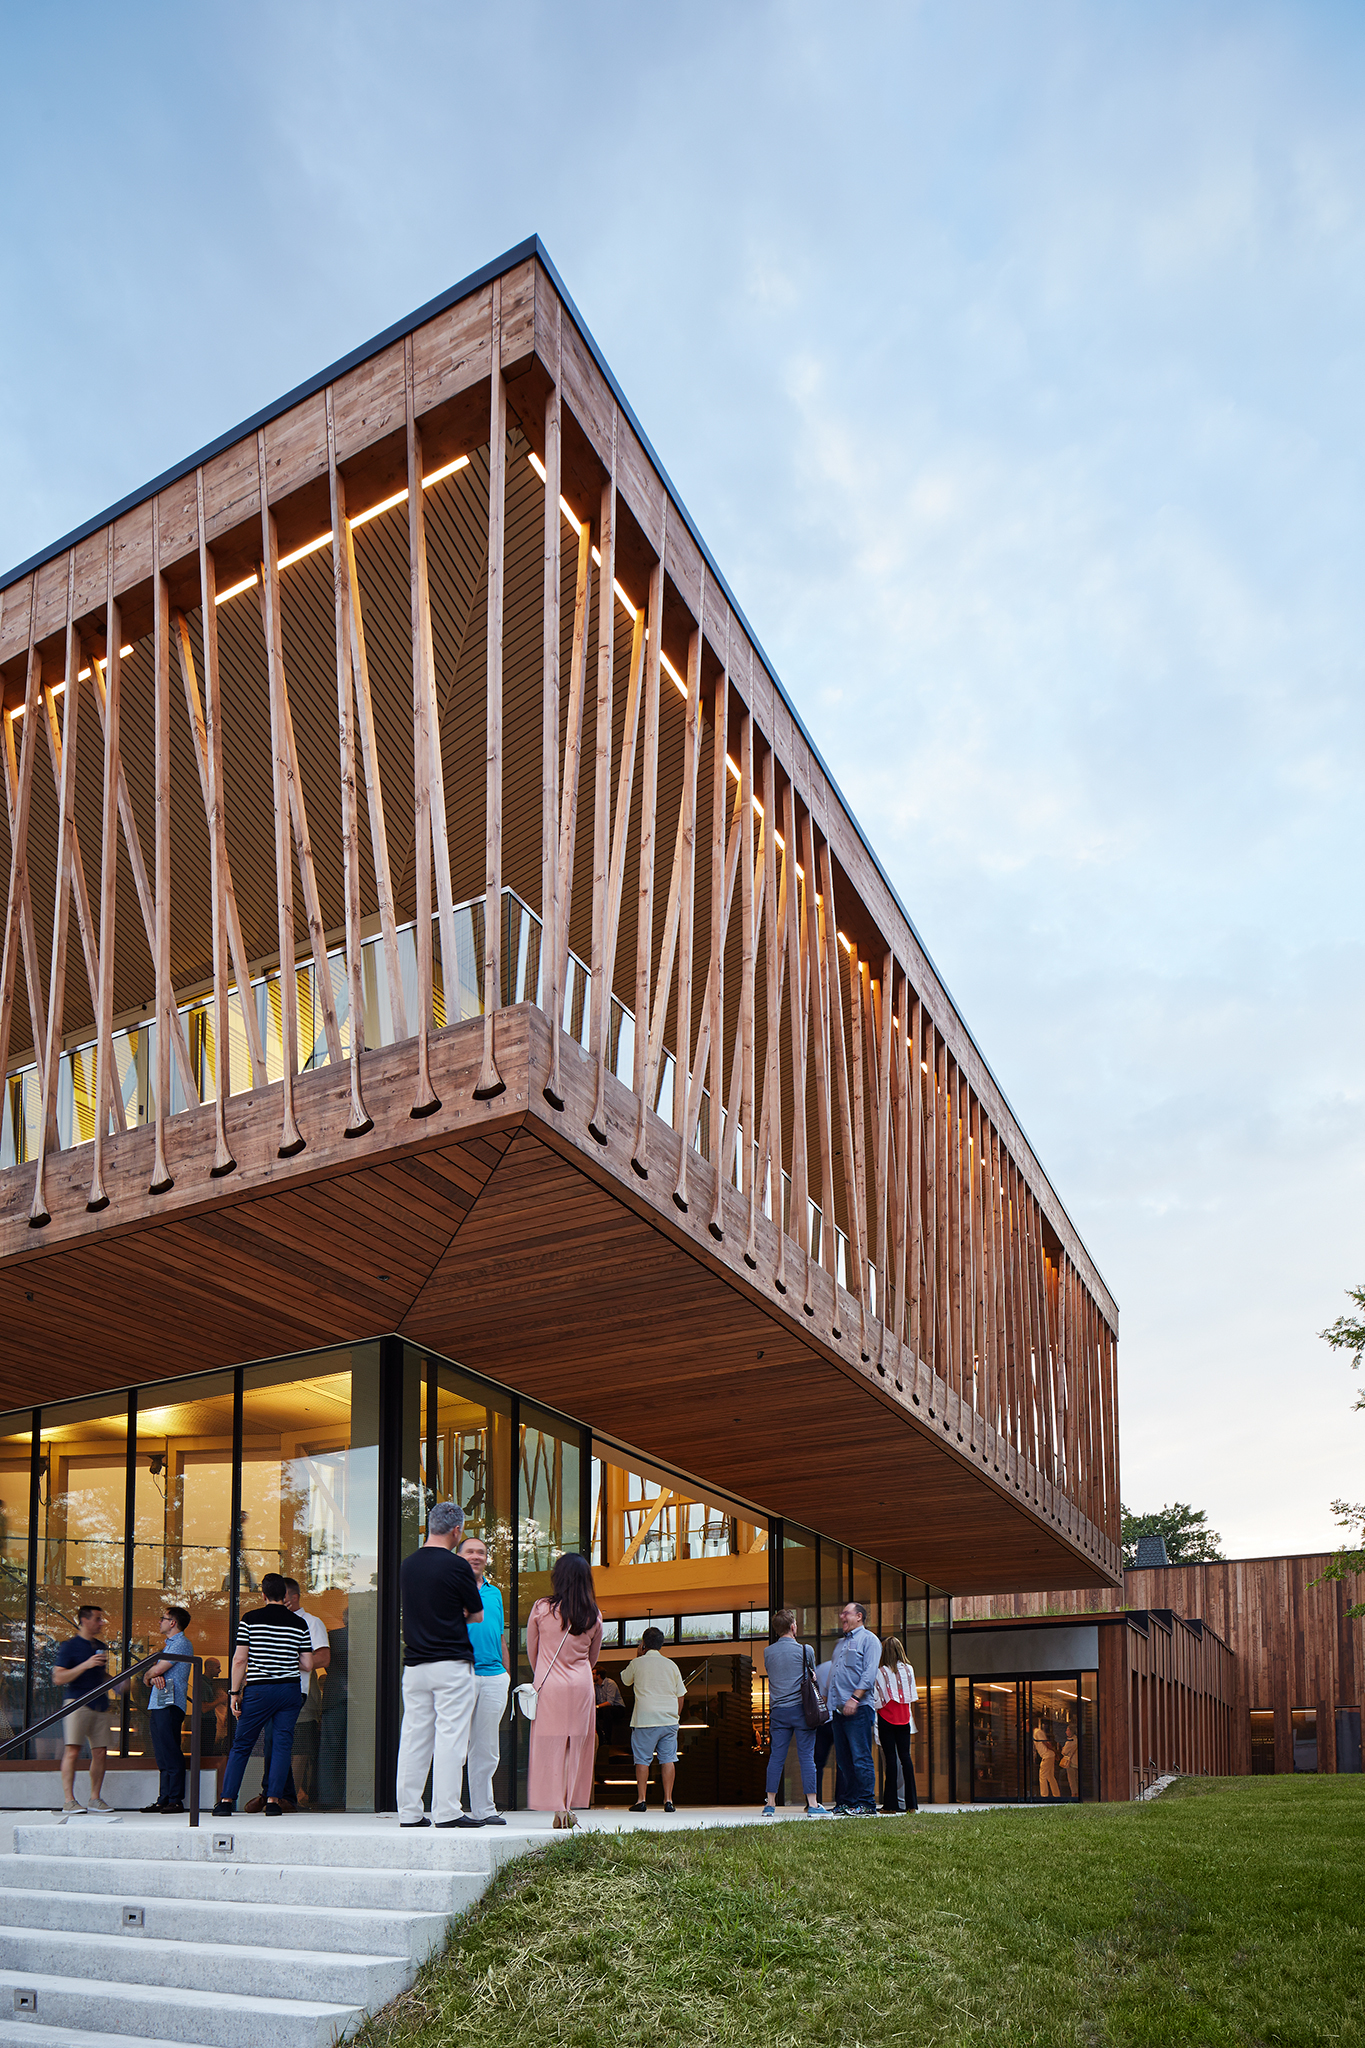 Studio Gang's wooden tensile structure for the Writers Theatre